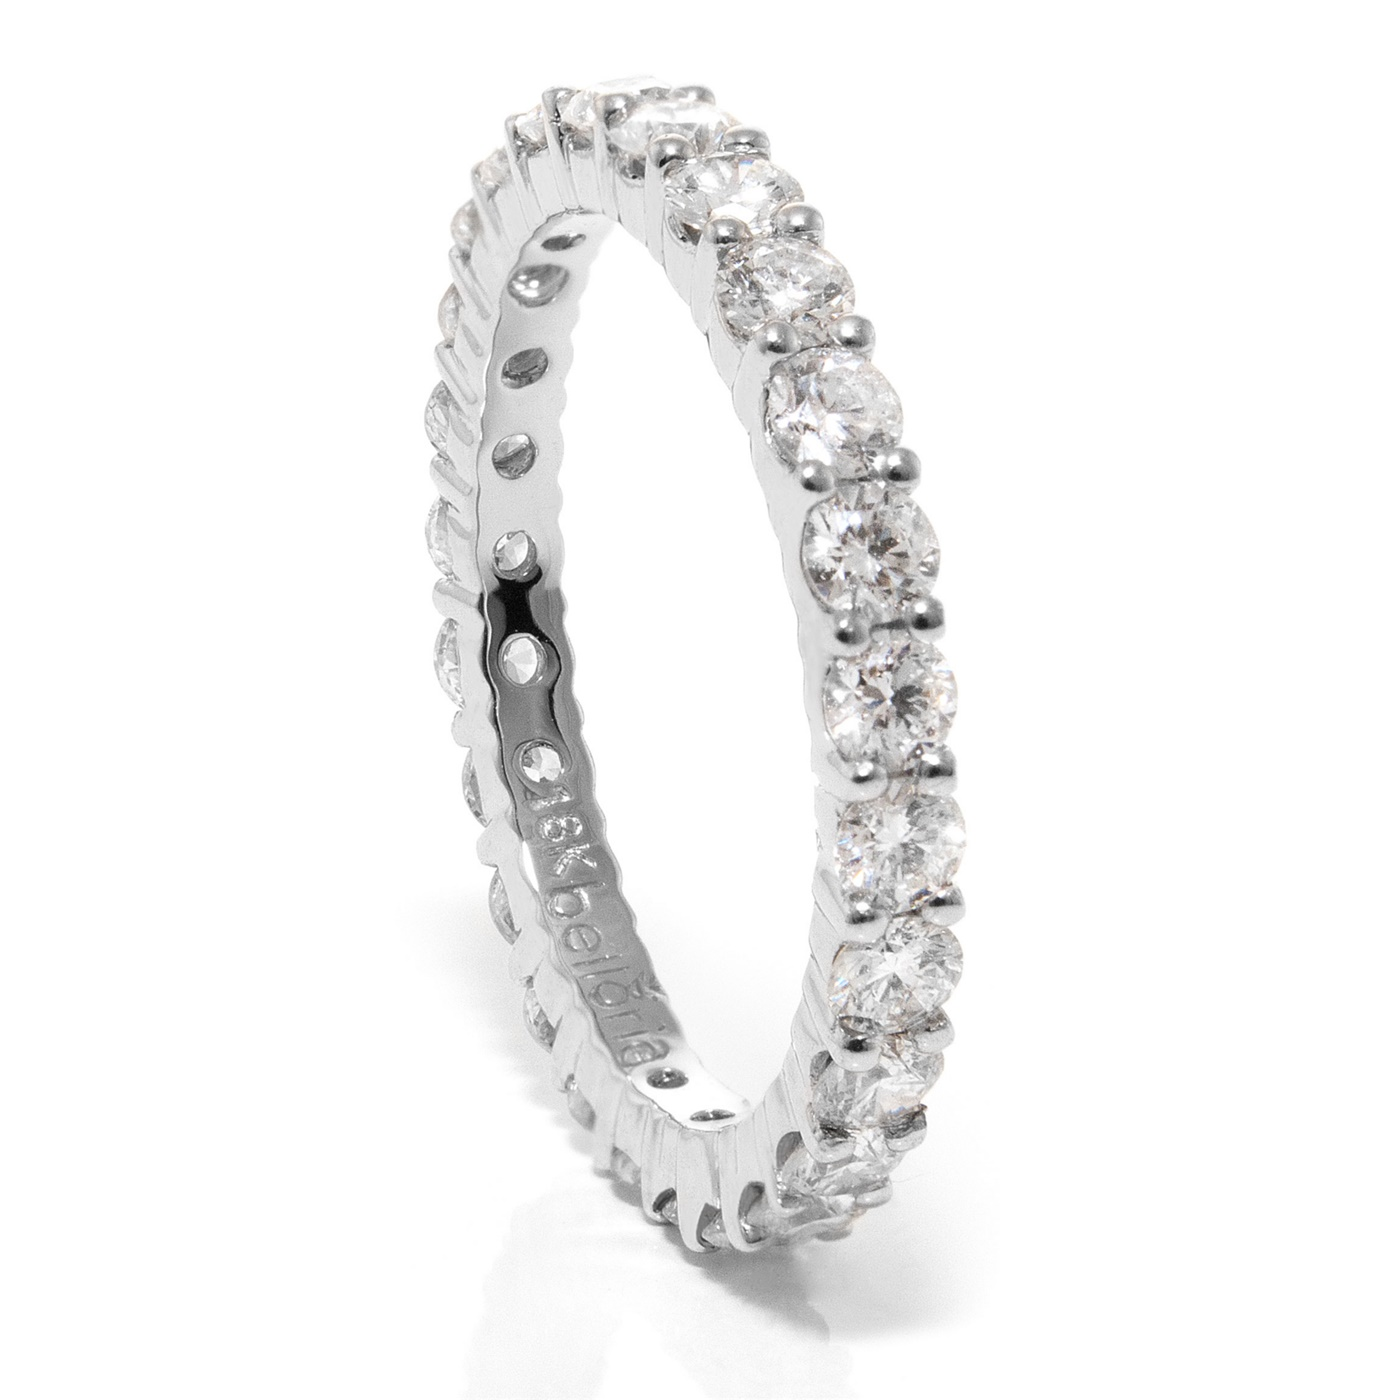 Ladies 18k White Gold Eternity Diamond Wedding Band Rings